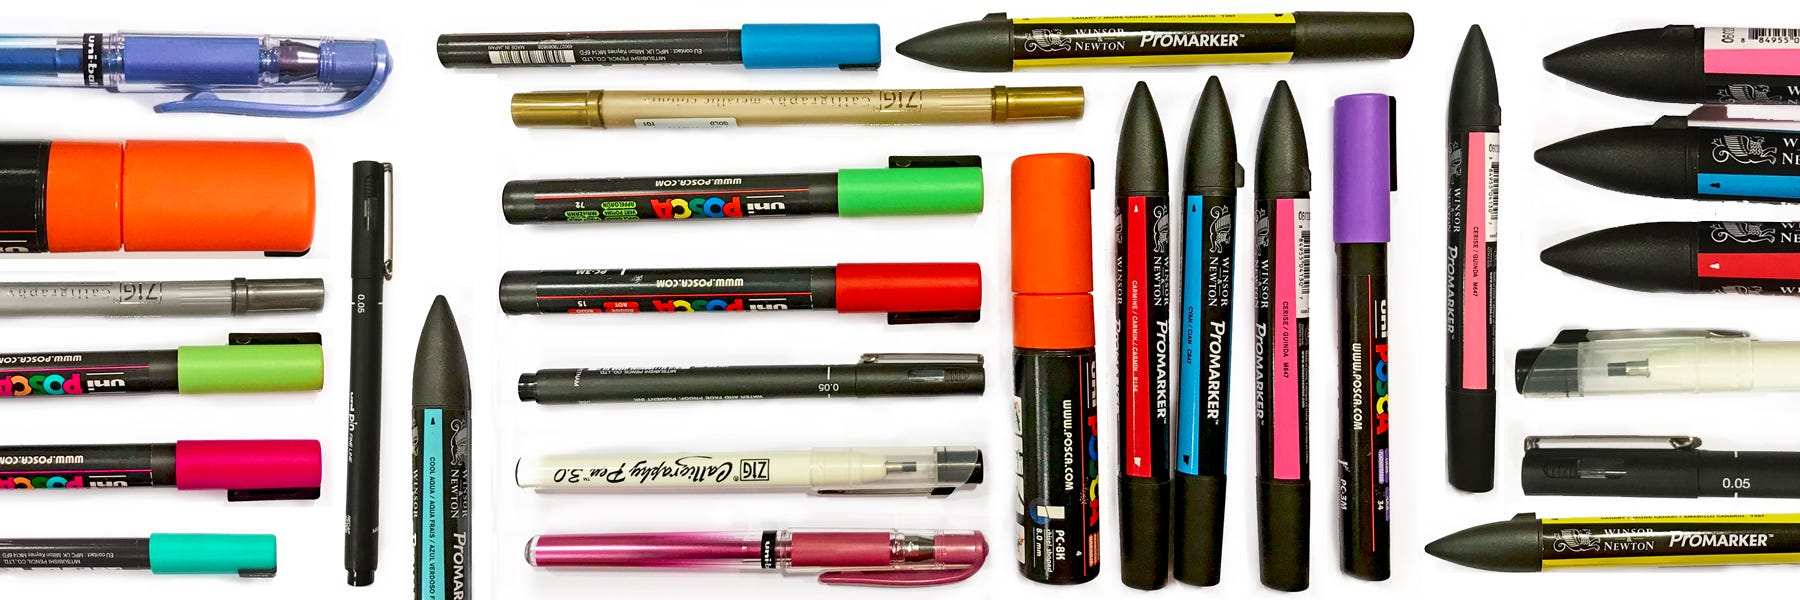 Tuschpennor & Markers